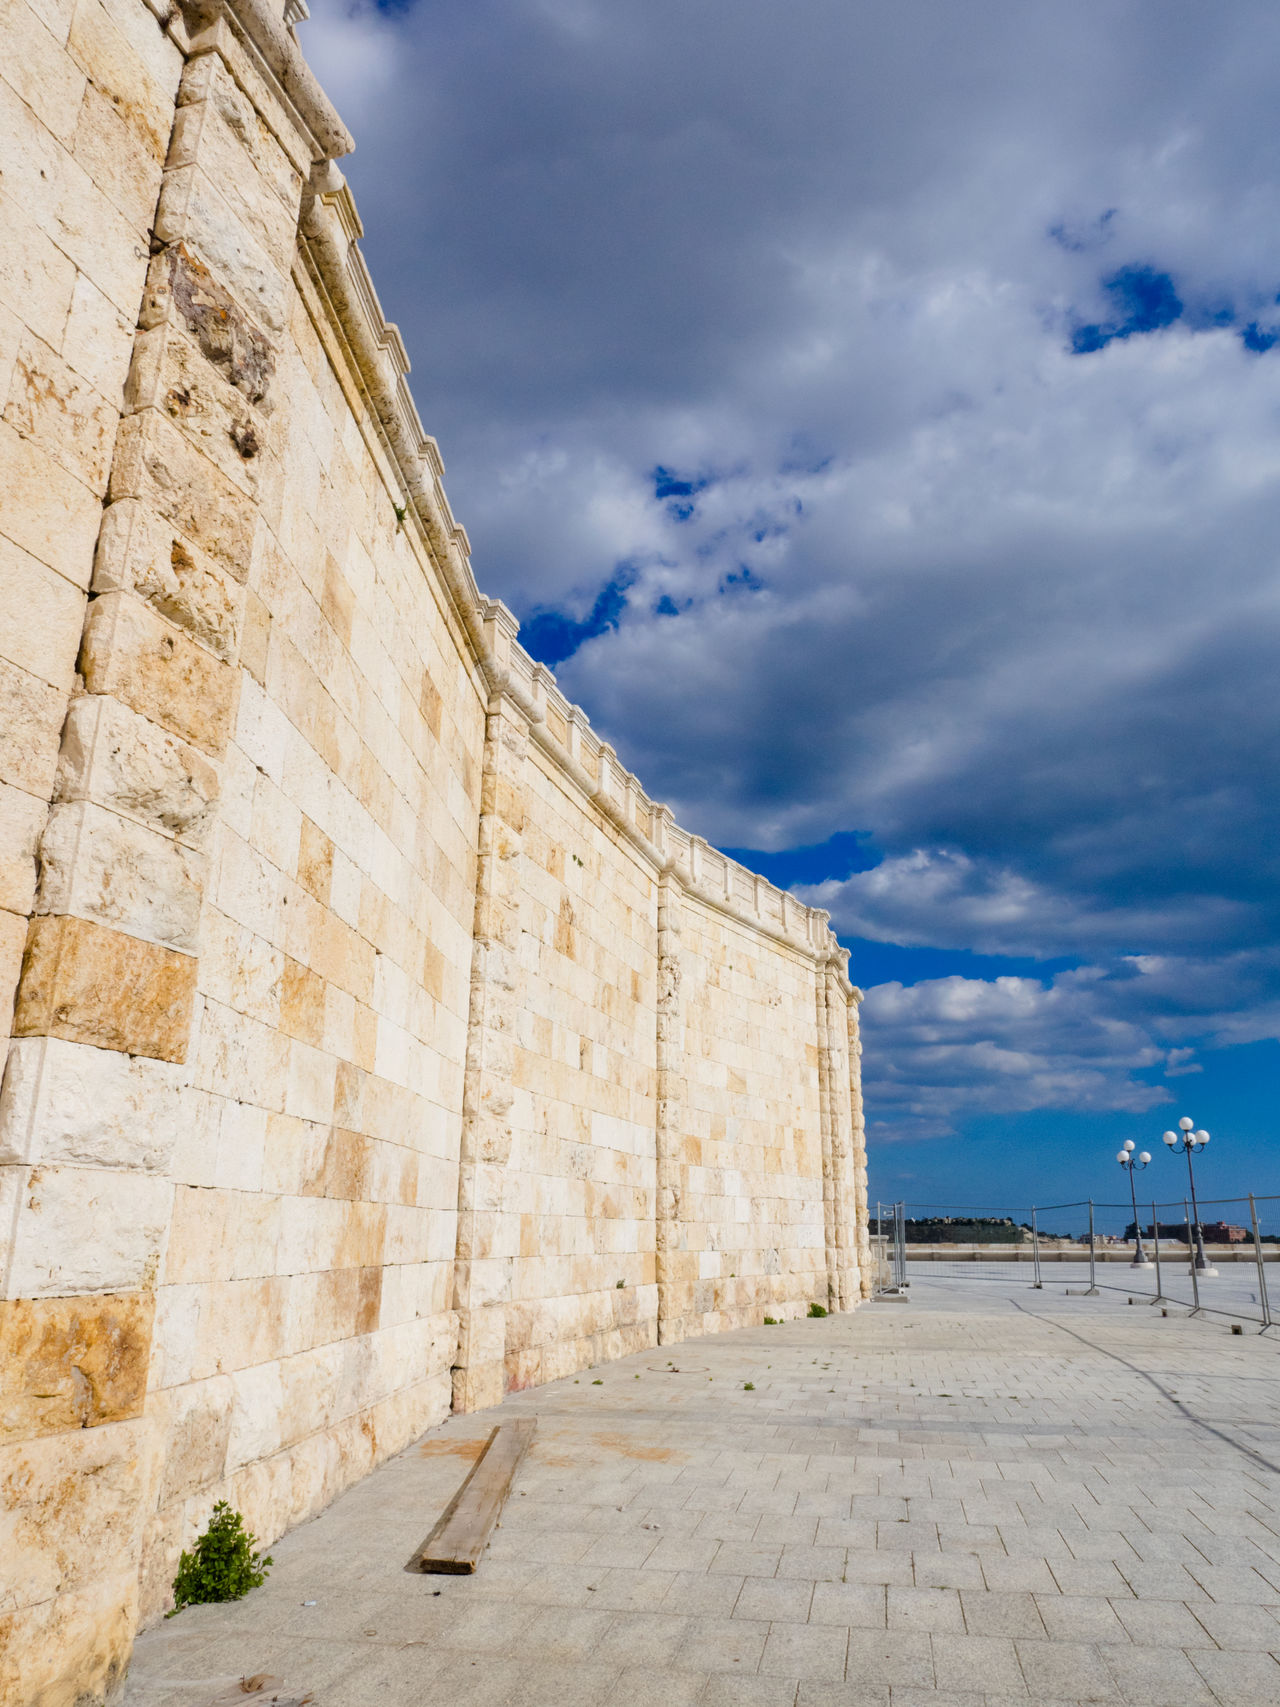 Cagliari architectures, Italy Architecture Architecture Building Exterior Cagliari Cagliari Urban City Cloud - Sky Day Italy No People Outdoors Sardinia Sky Wall Wall - Building Feature Walls